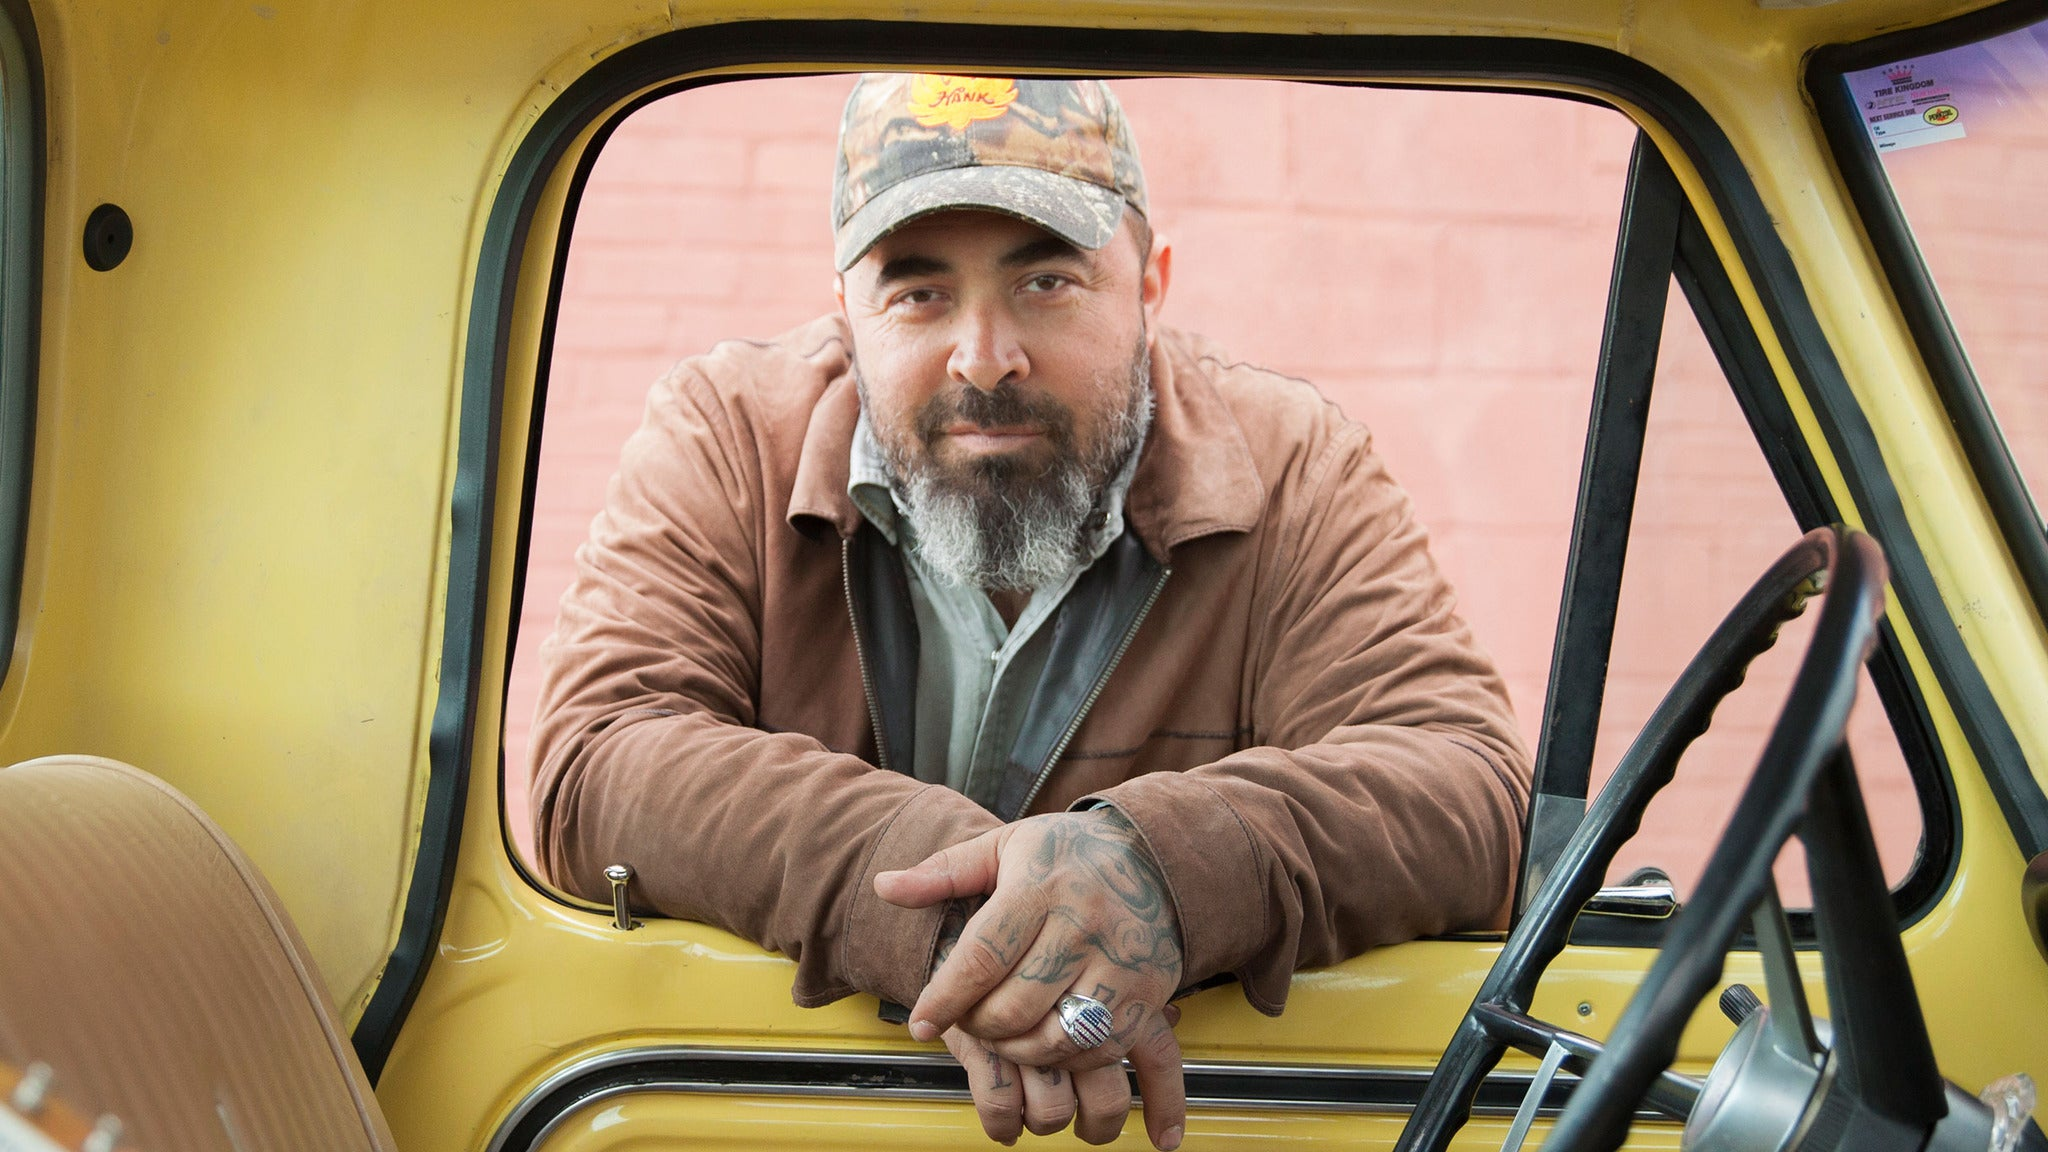 Aaron Lewis at Snoqualmie Casino - WA